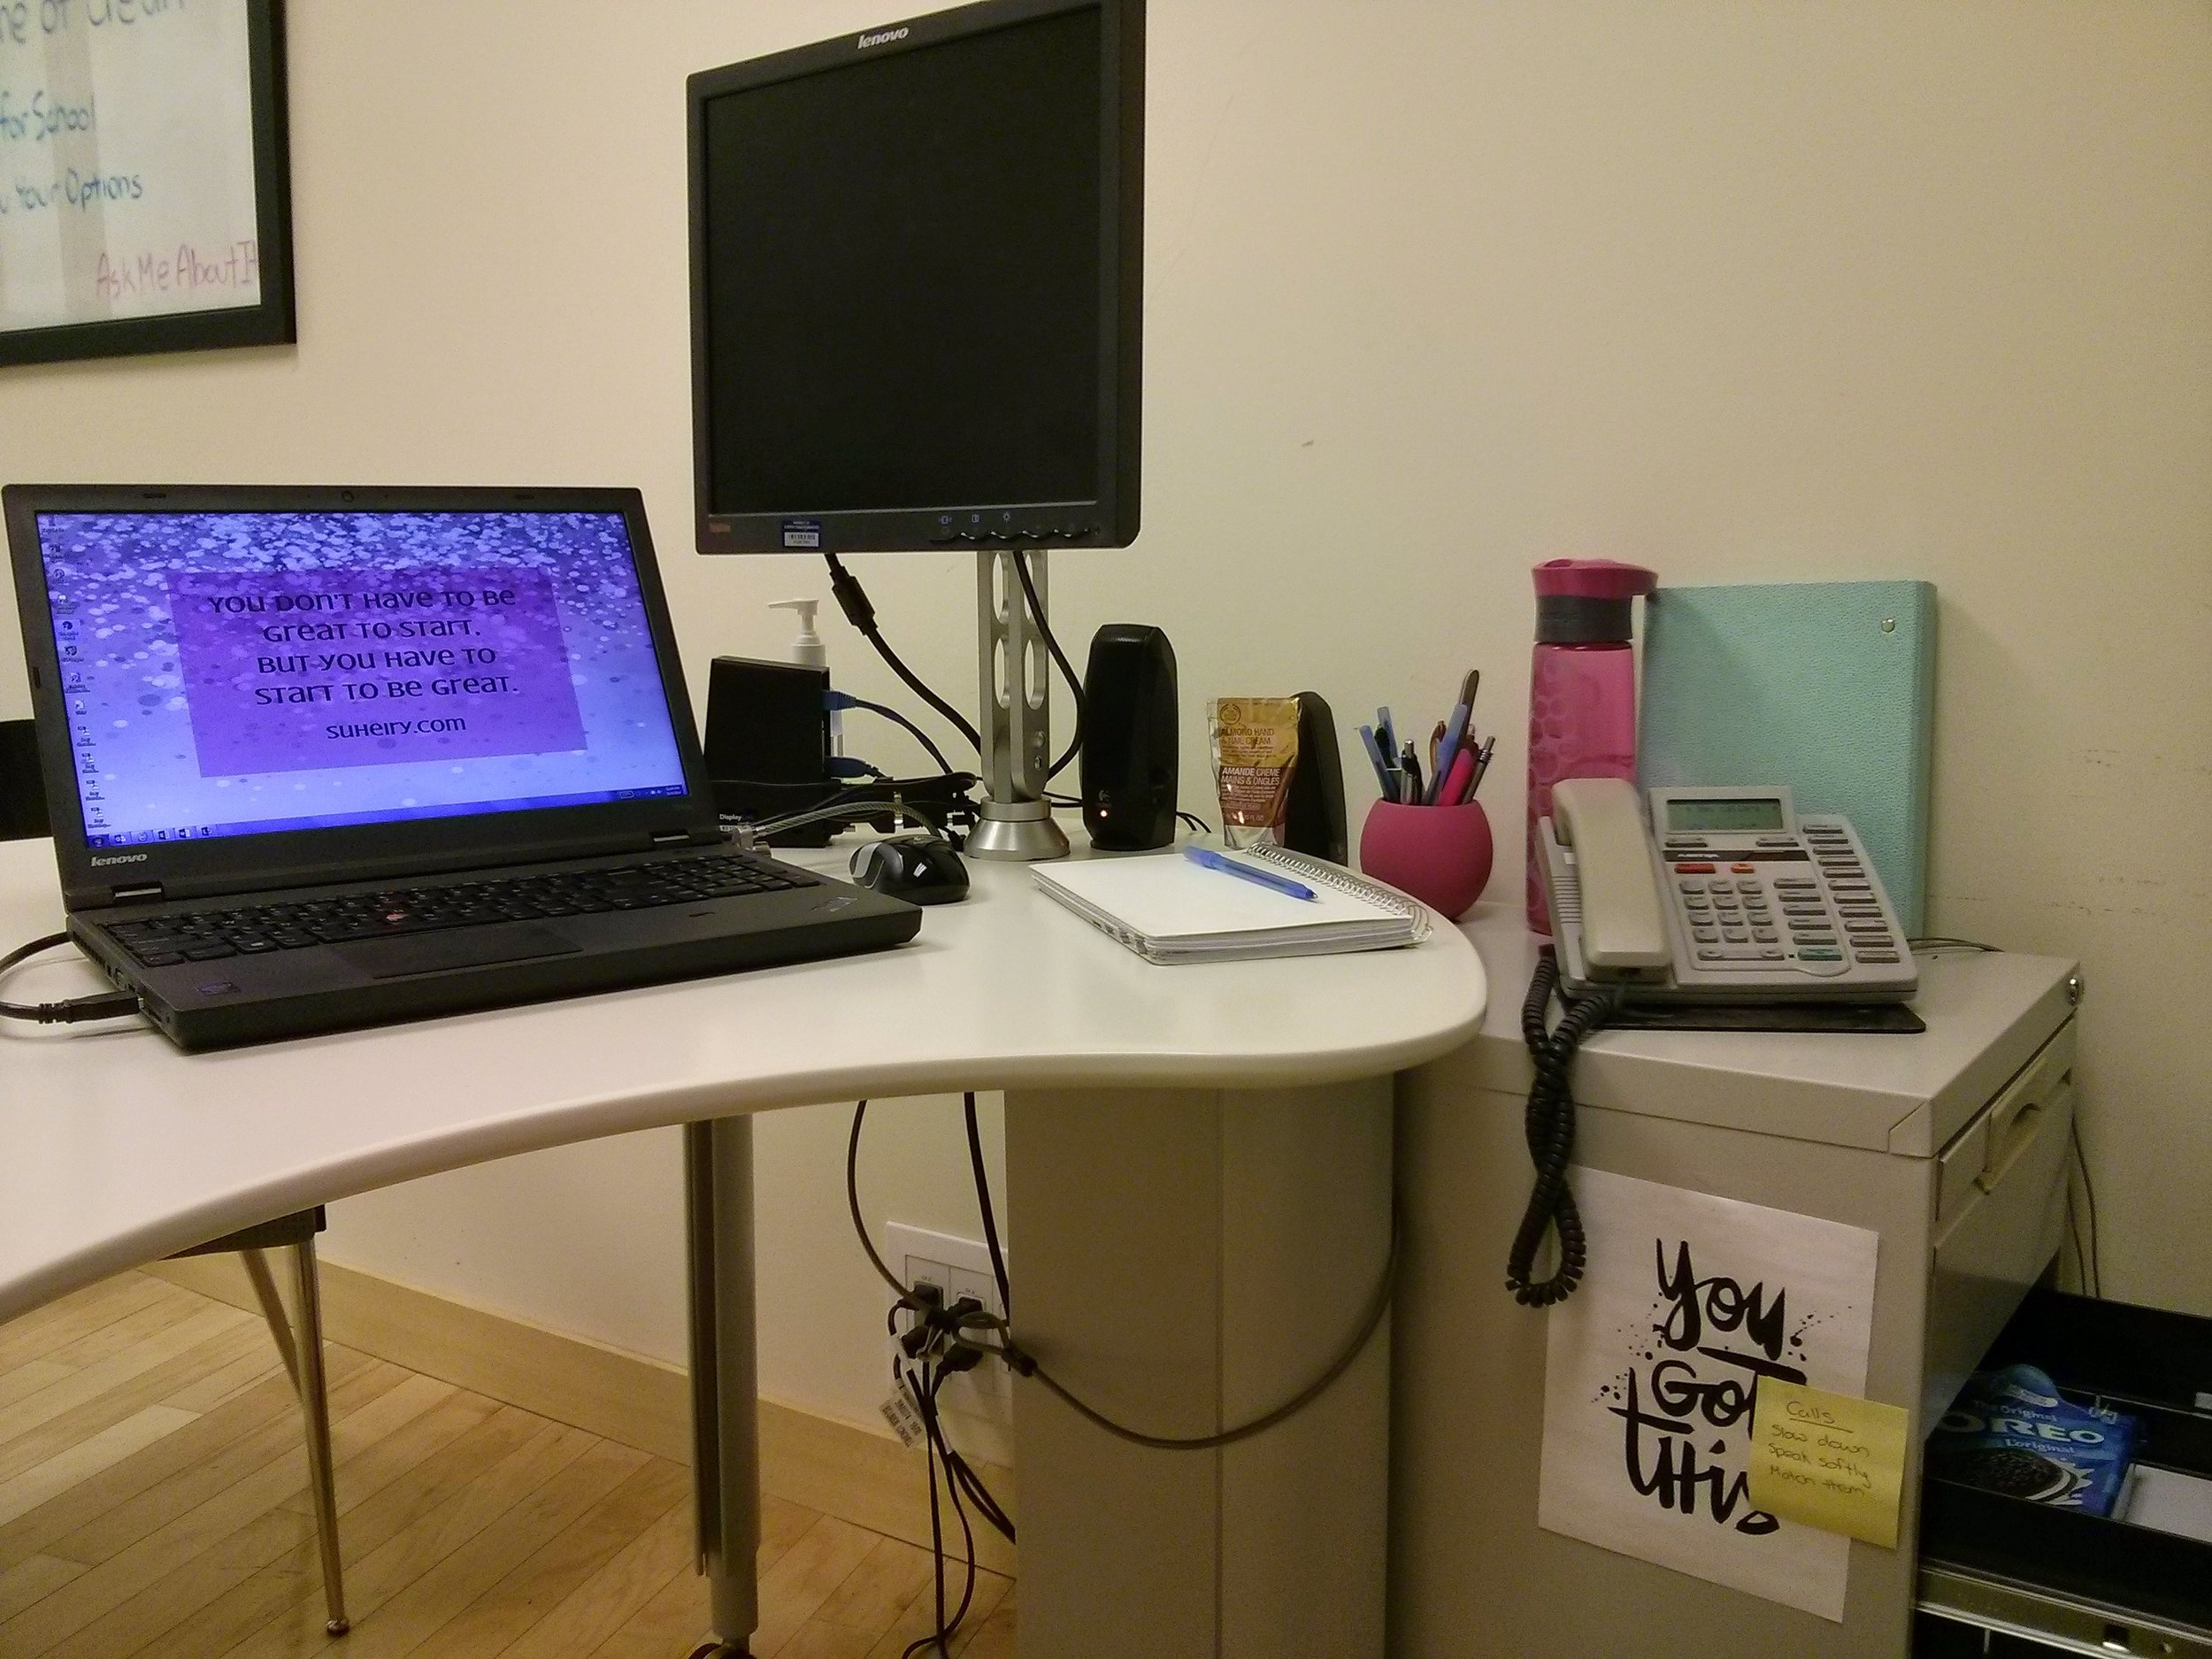 My workspace is changing - I am excited for this next step but also a little terrified.